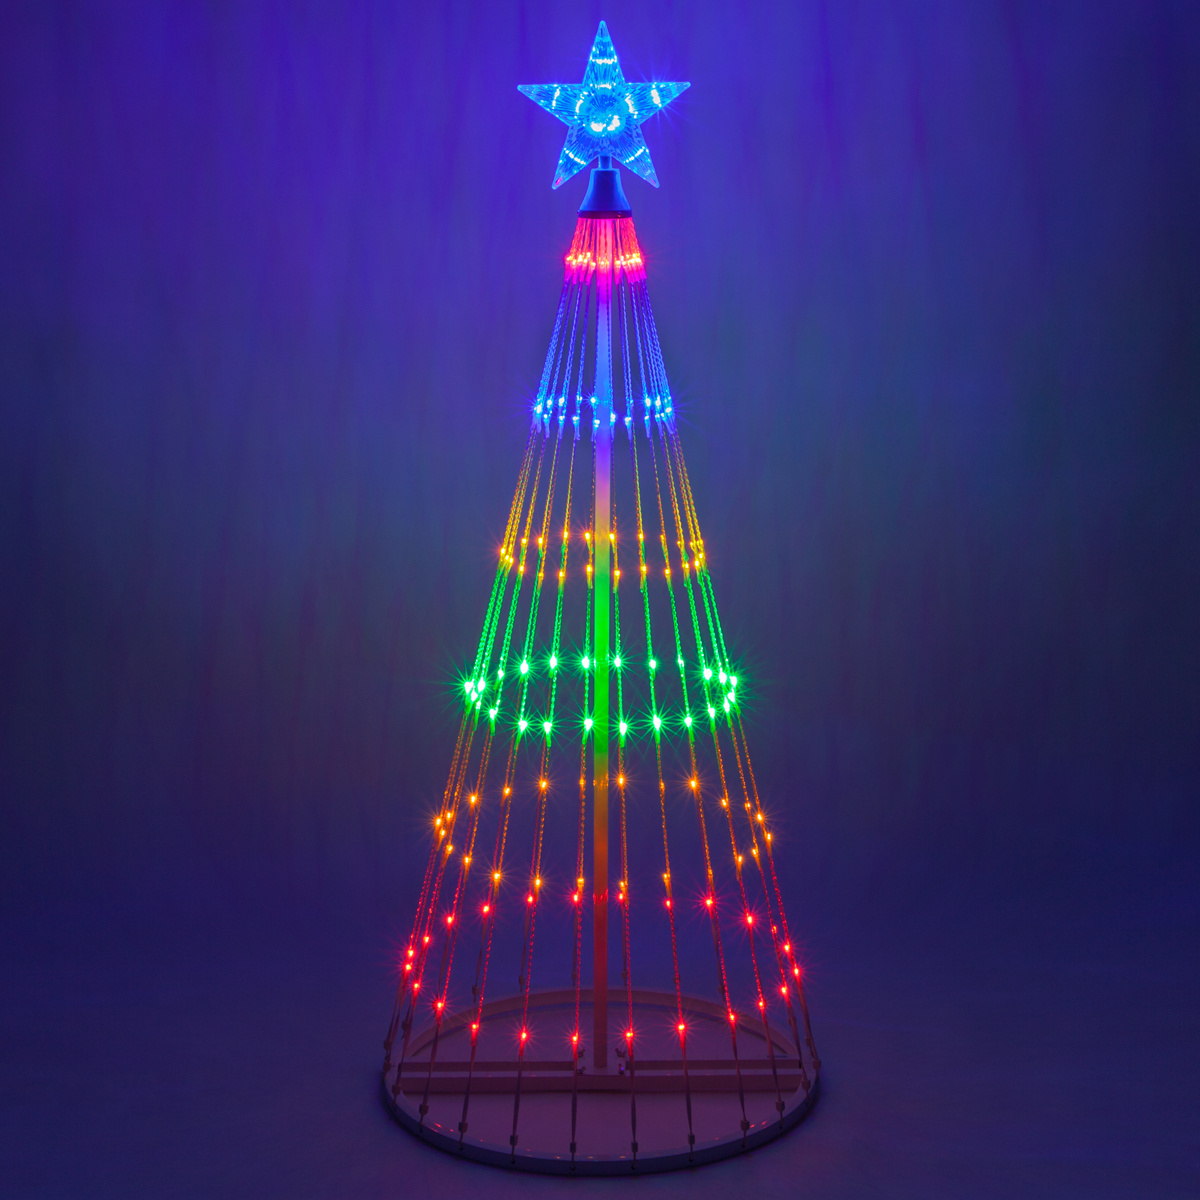 Led Christmas Light.Wintergreen Lighting 4 Multicolor Outdoor Christmas Light Show Cone Tree 14 Function Led Outdoor Christmas Decoration